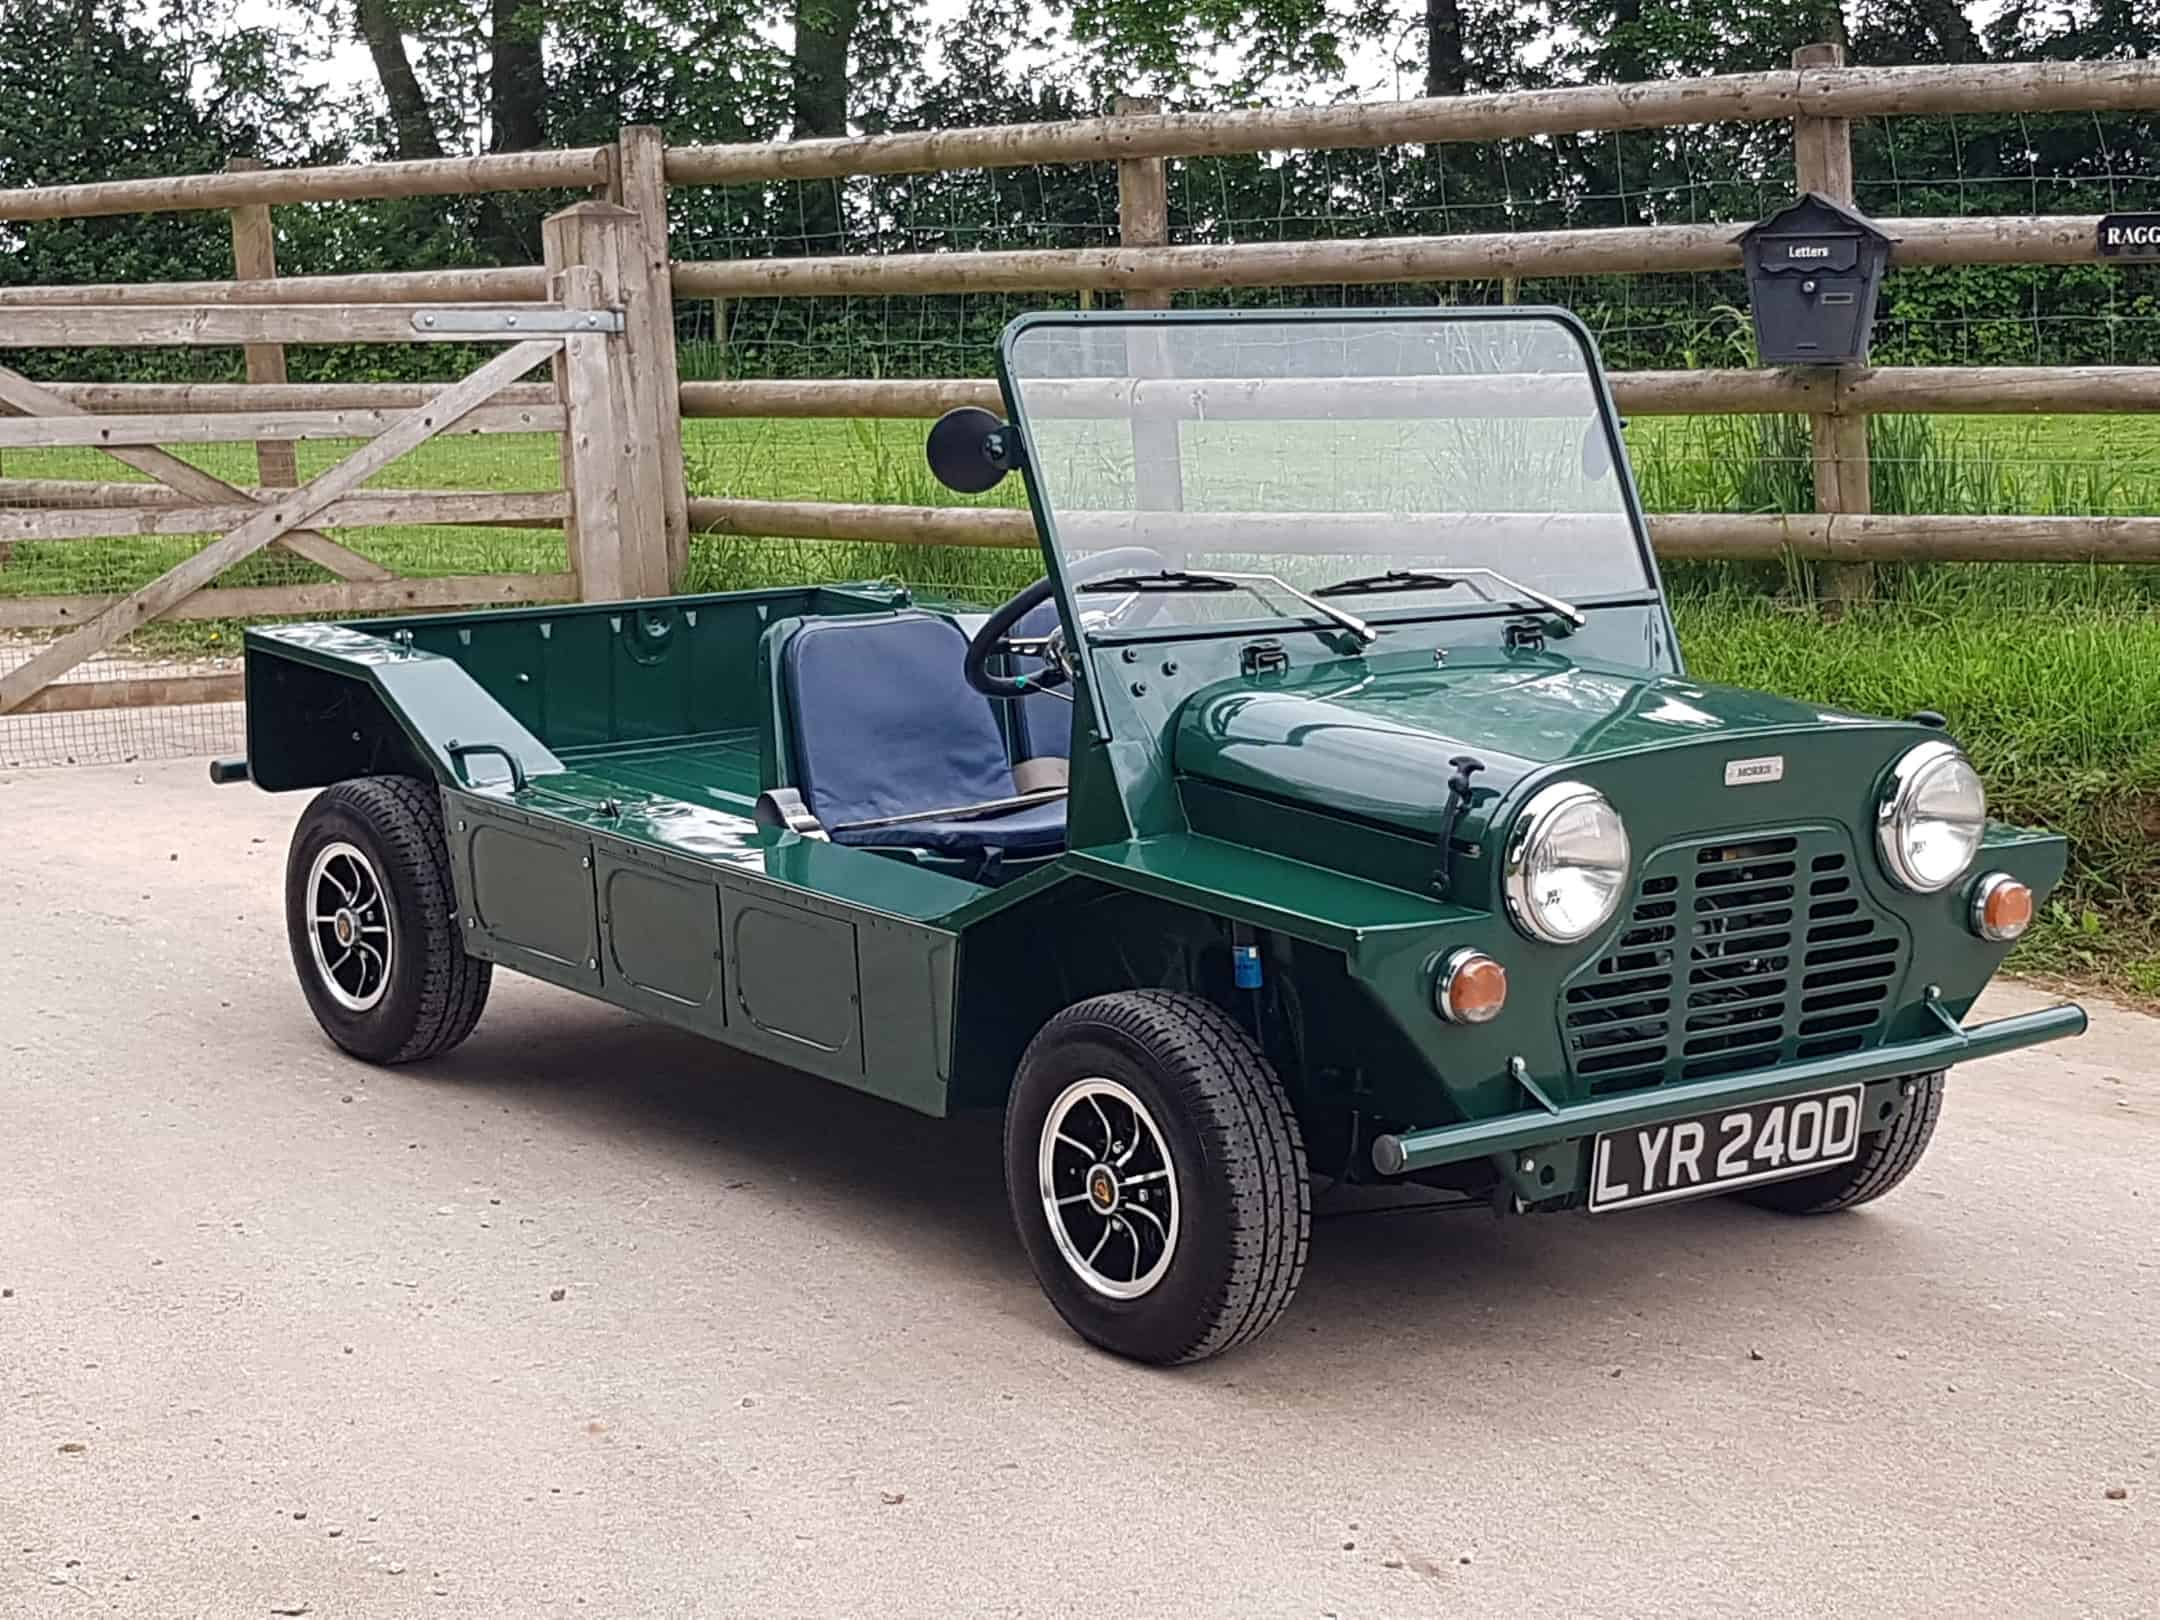 ** COMIG SOON ** 1966 Morris Mini Moke On Just 15830 Miles From New!